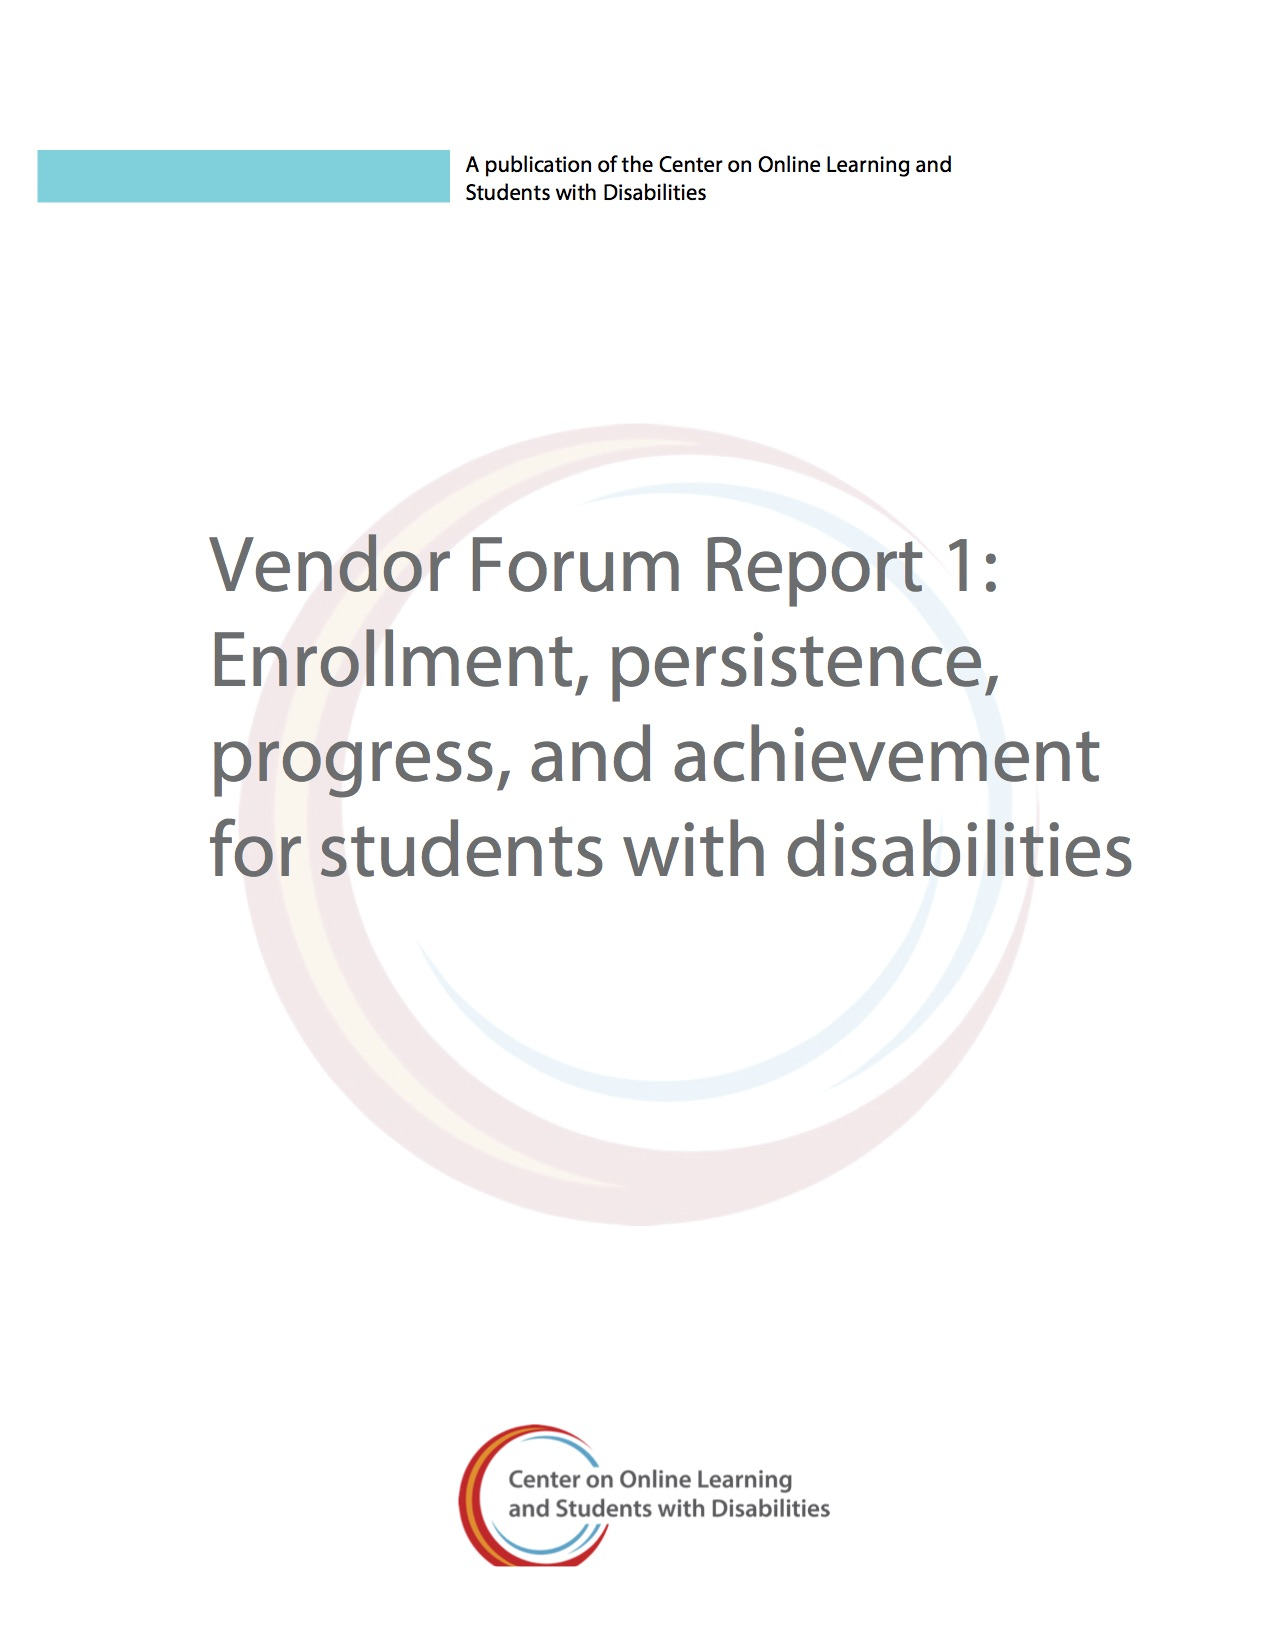 Vendor Forum Report 1: Enrollment, Persistence, Progress, And Achievement For Students With Disabilities